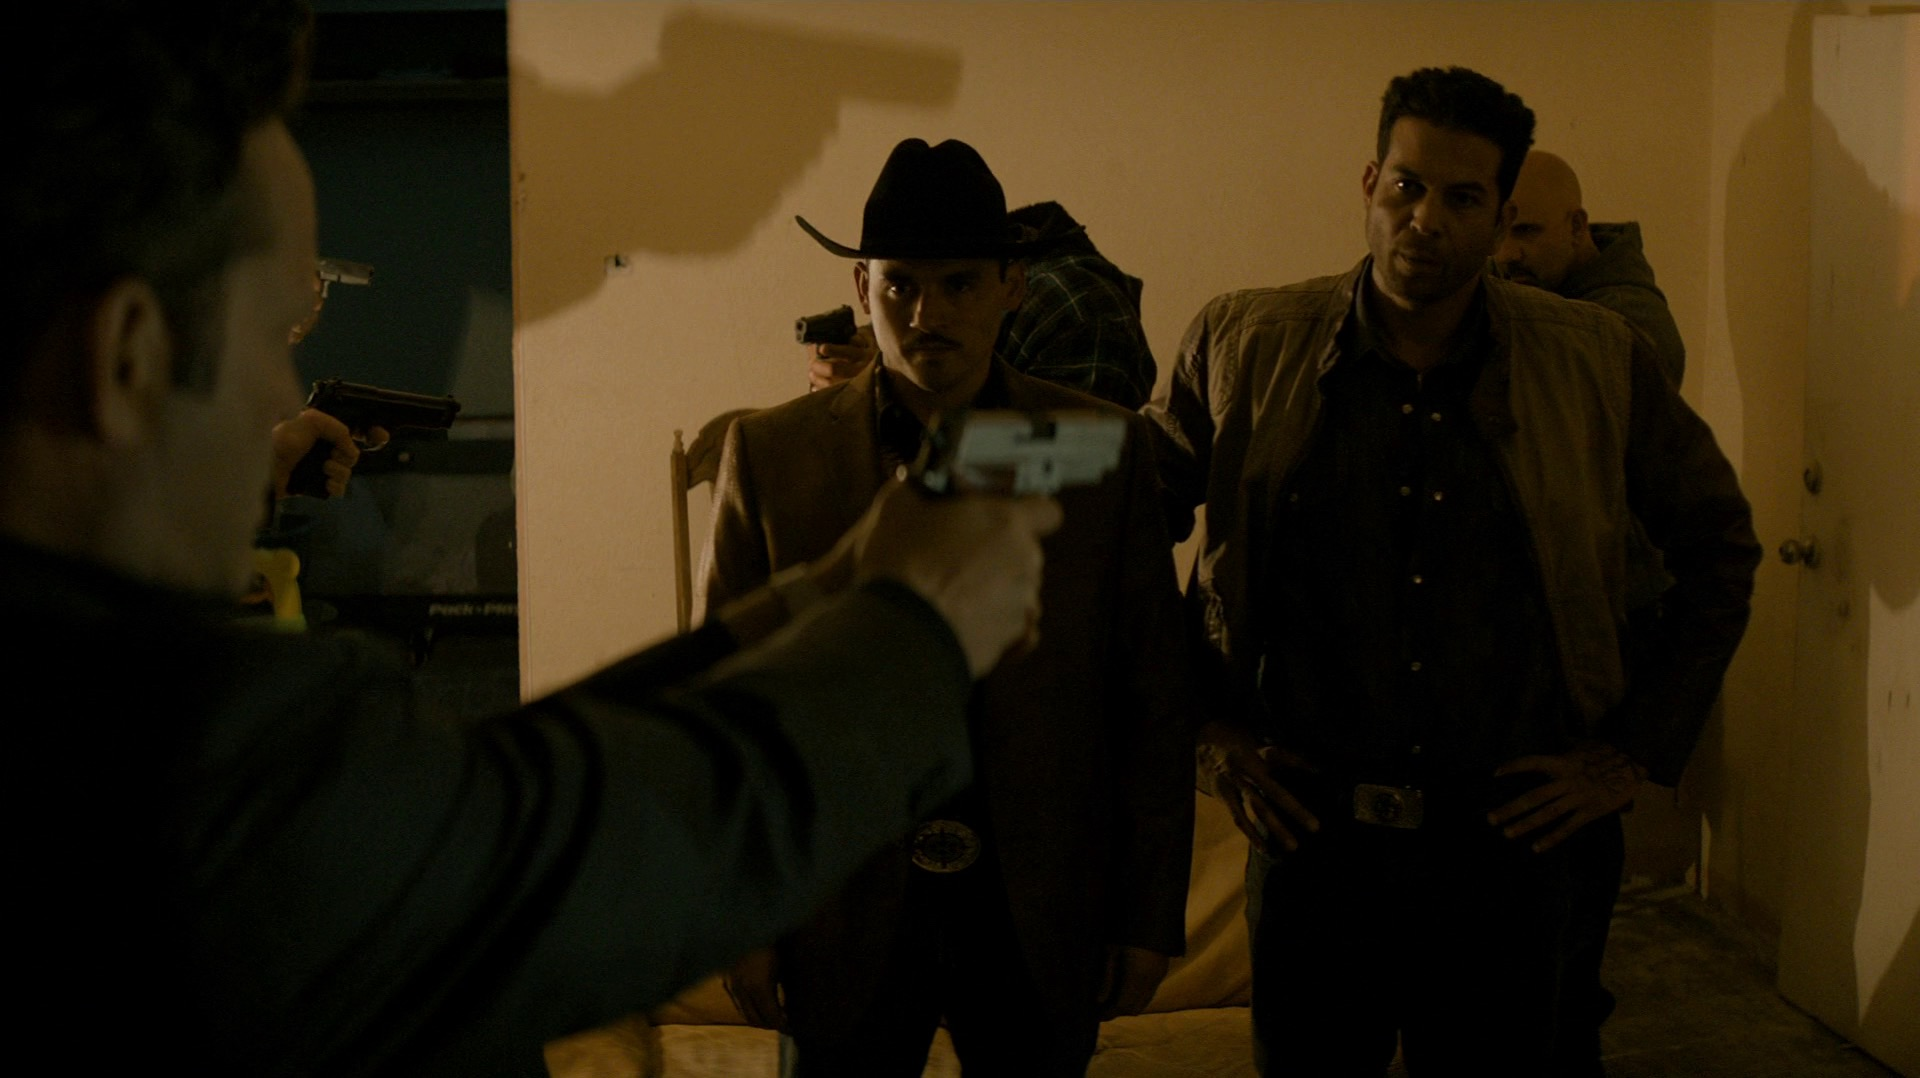 Frank and the Mexican thugs who tried to twist his arm in the previous episode